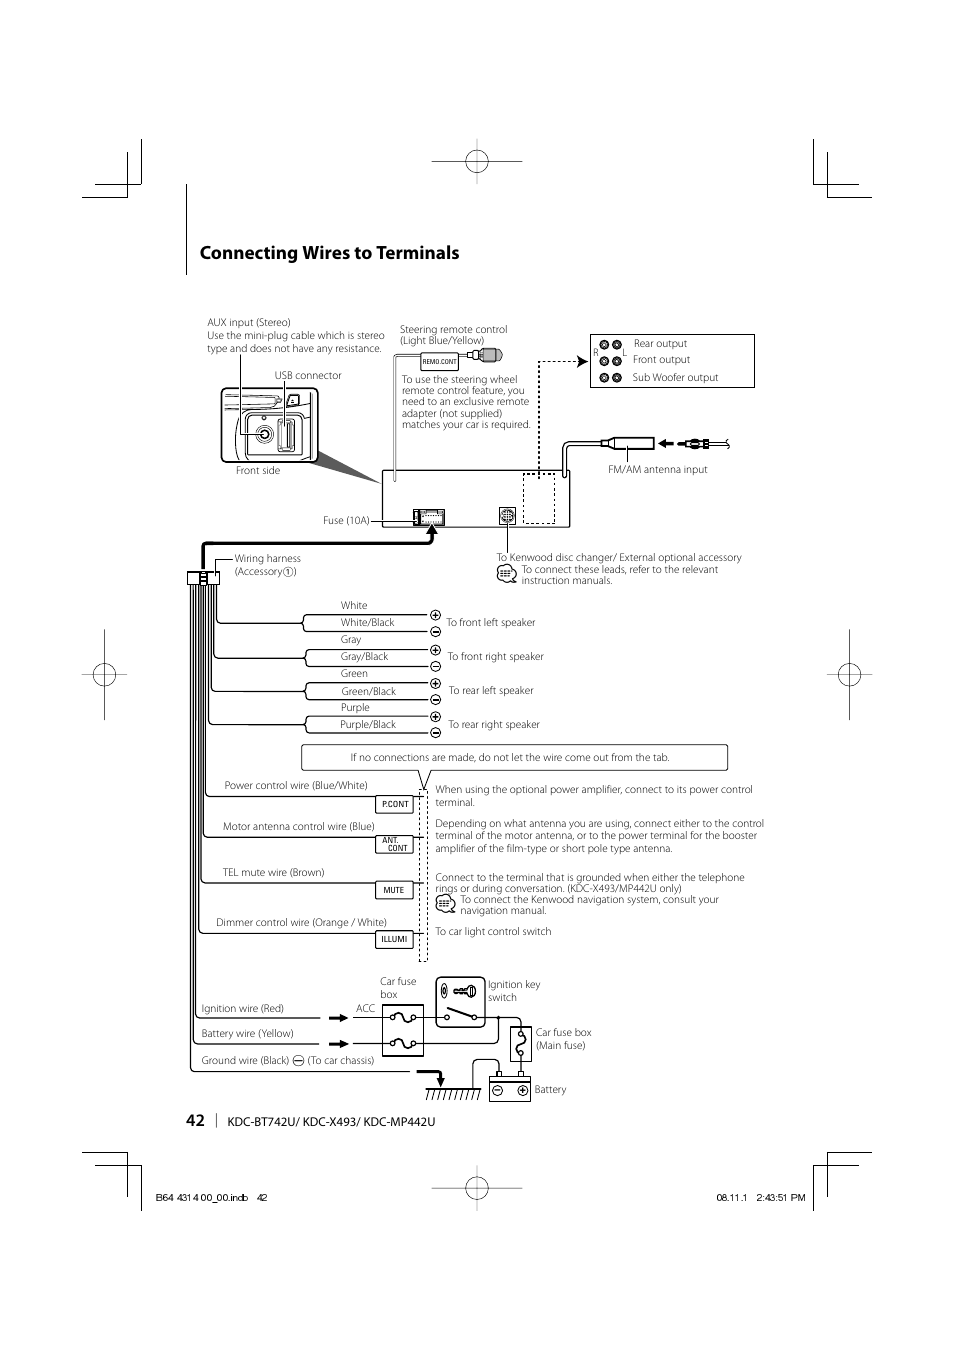 kenwood kdc bt742u page42 connecting wires to terminals kenwood kdc bt742u user manual kenwood kdc 135 wiring diagram at panicattacktreatment.co